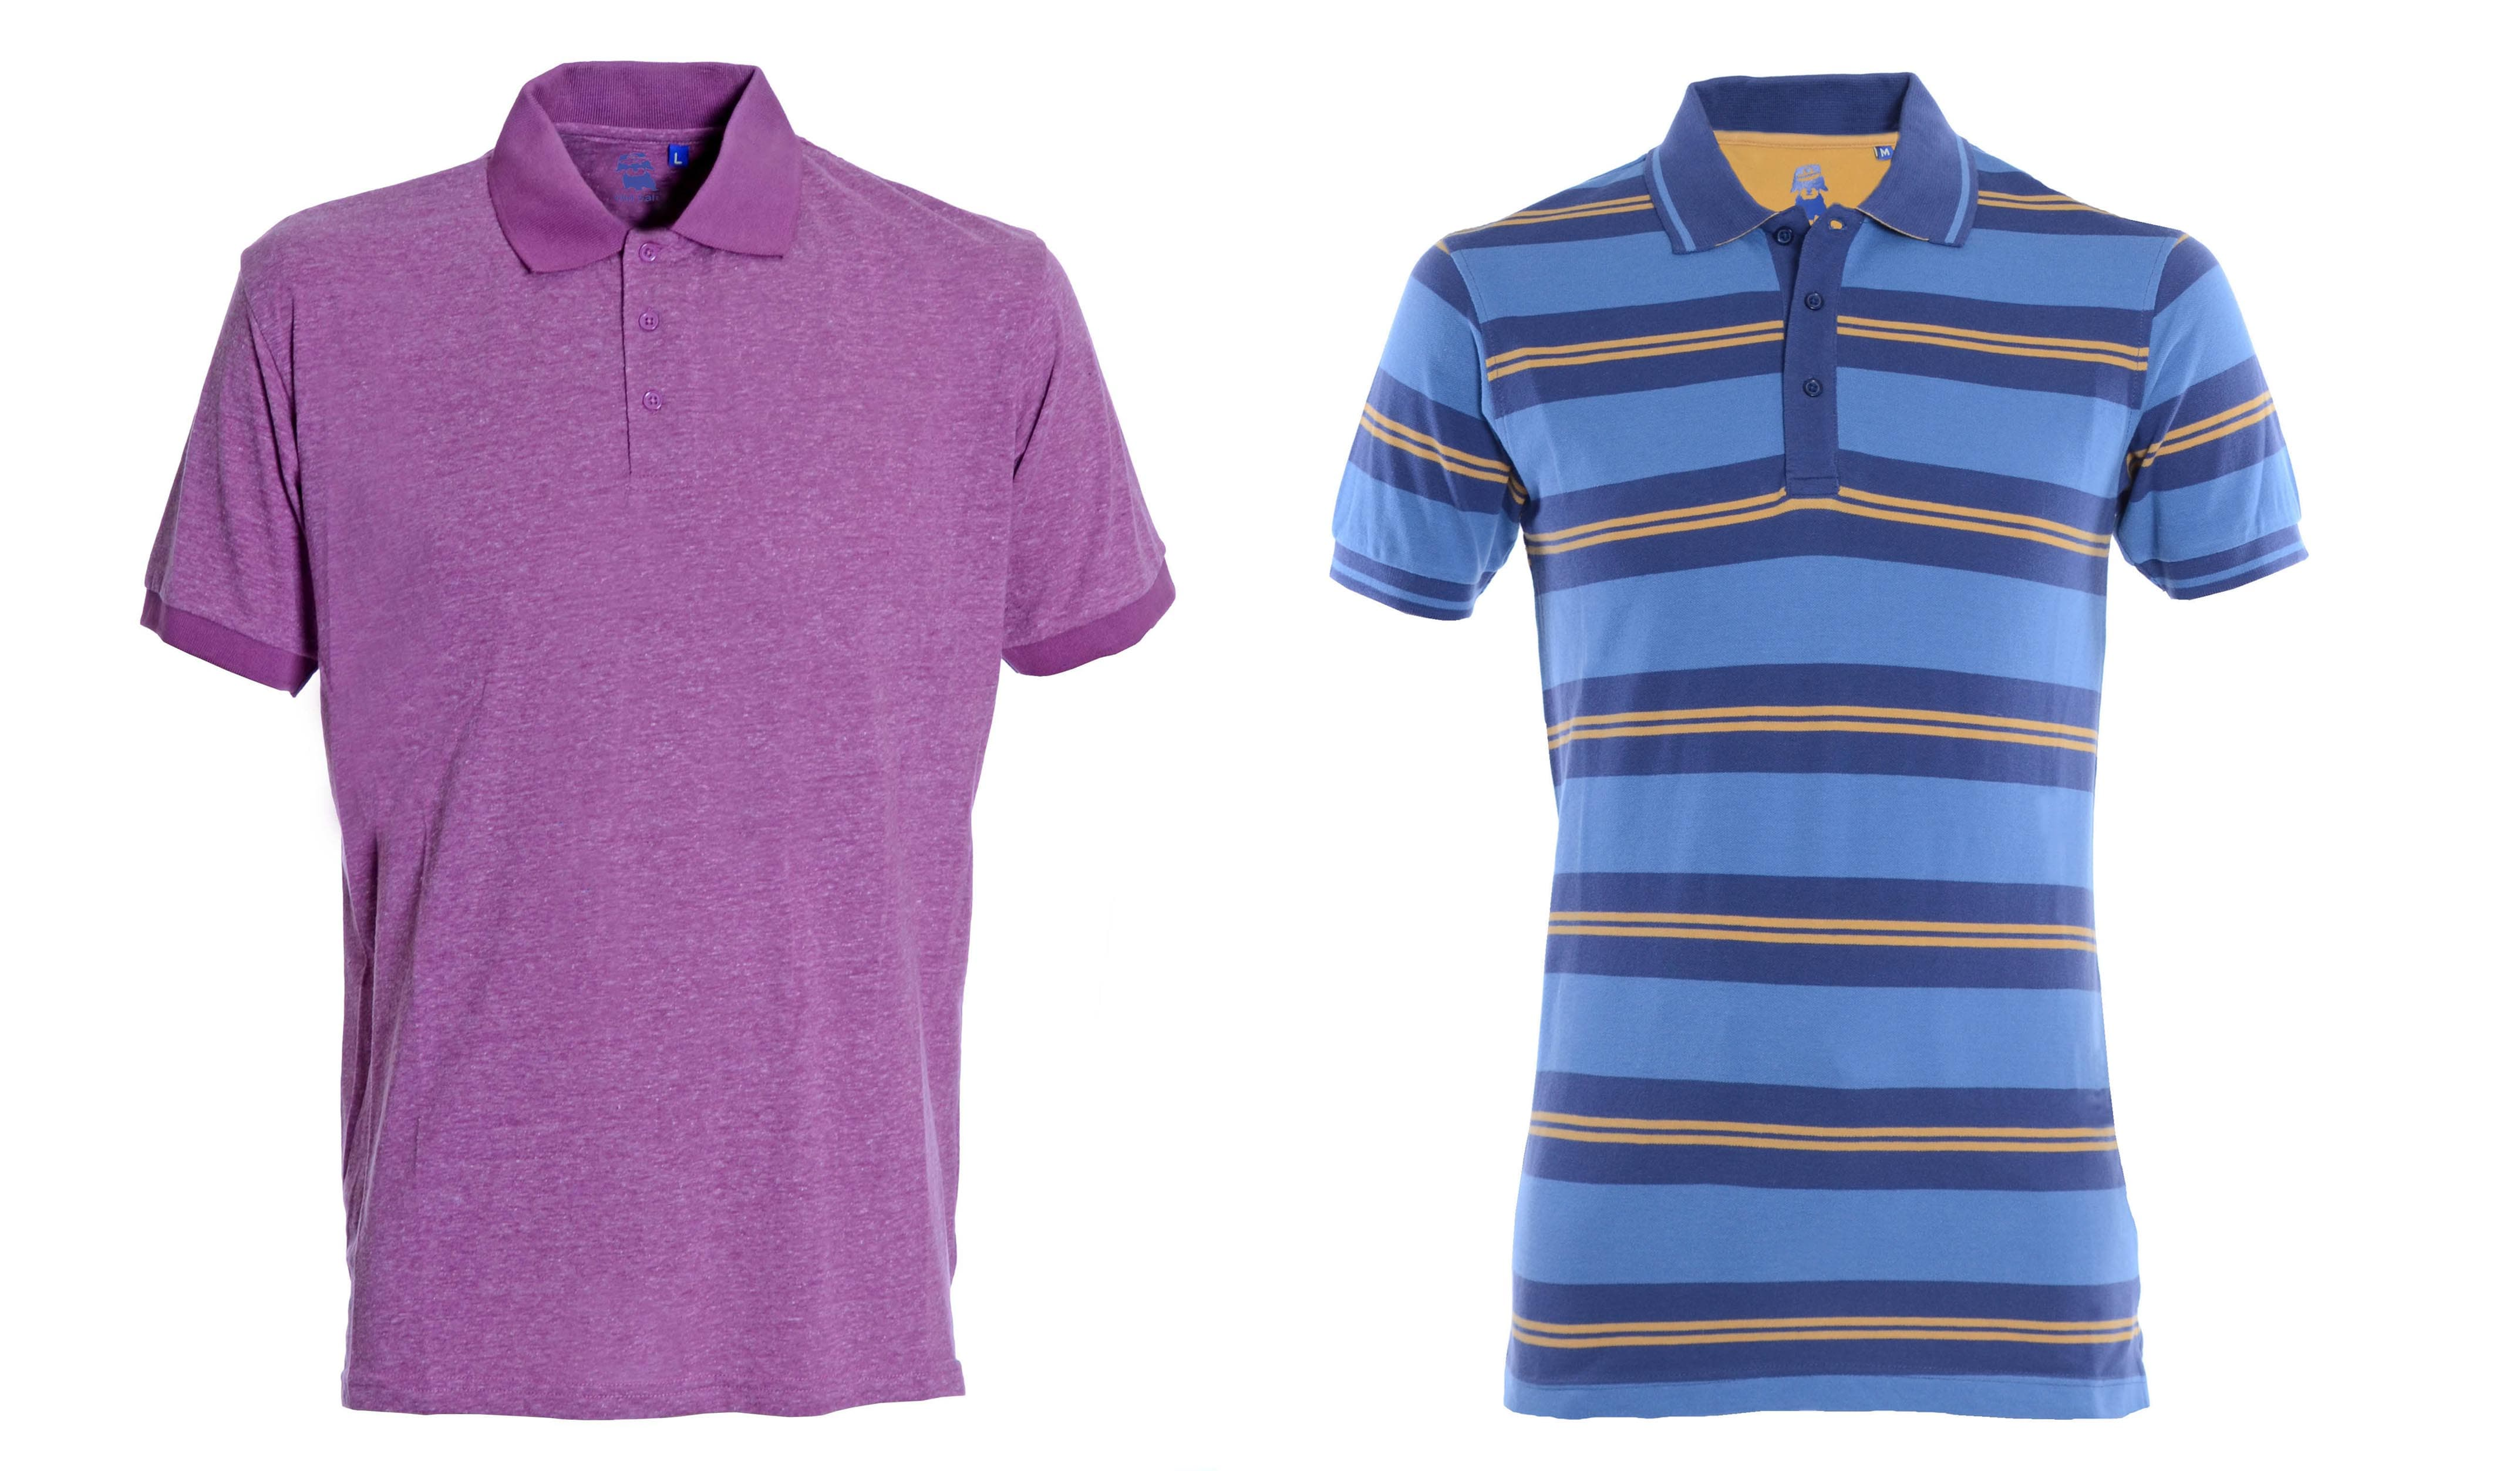 Shop Bar Harbour and Old Salt by Double TWO Casual Polo Shirts. Perfect for Glastonbury!